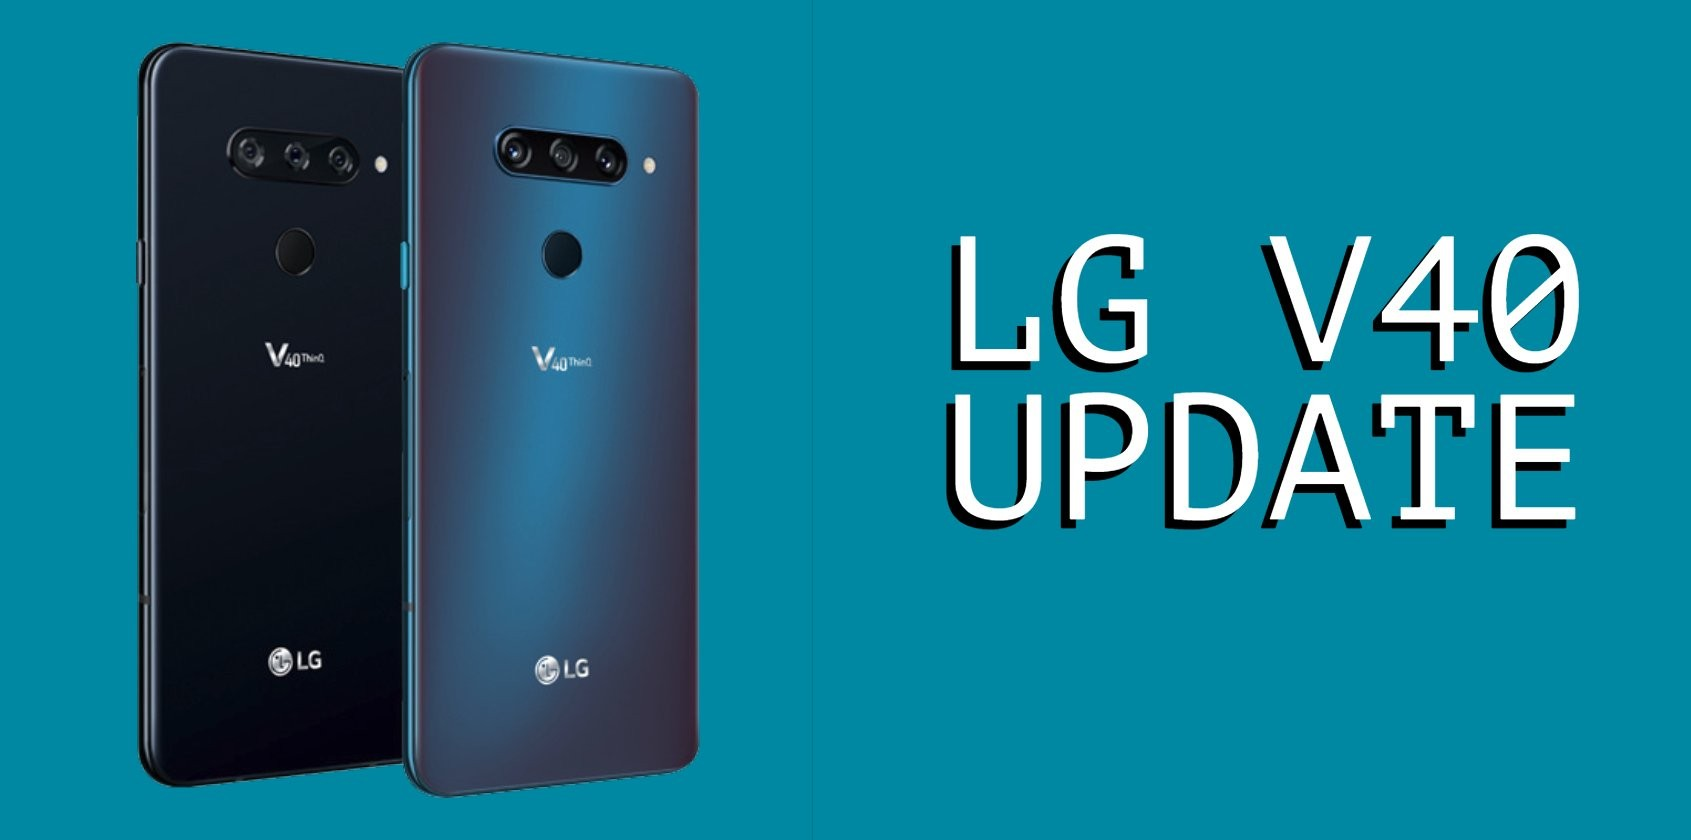 LG V40 Android update